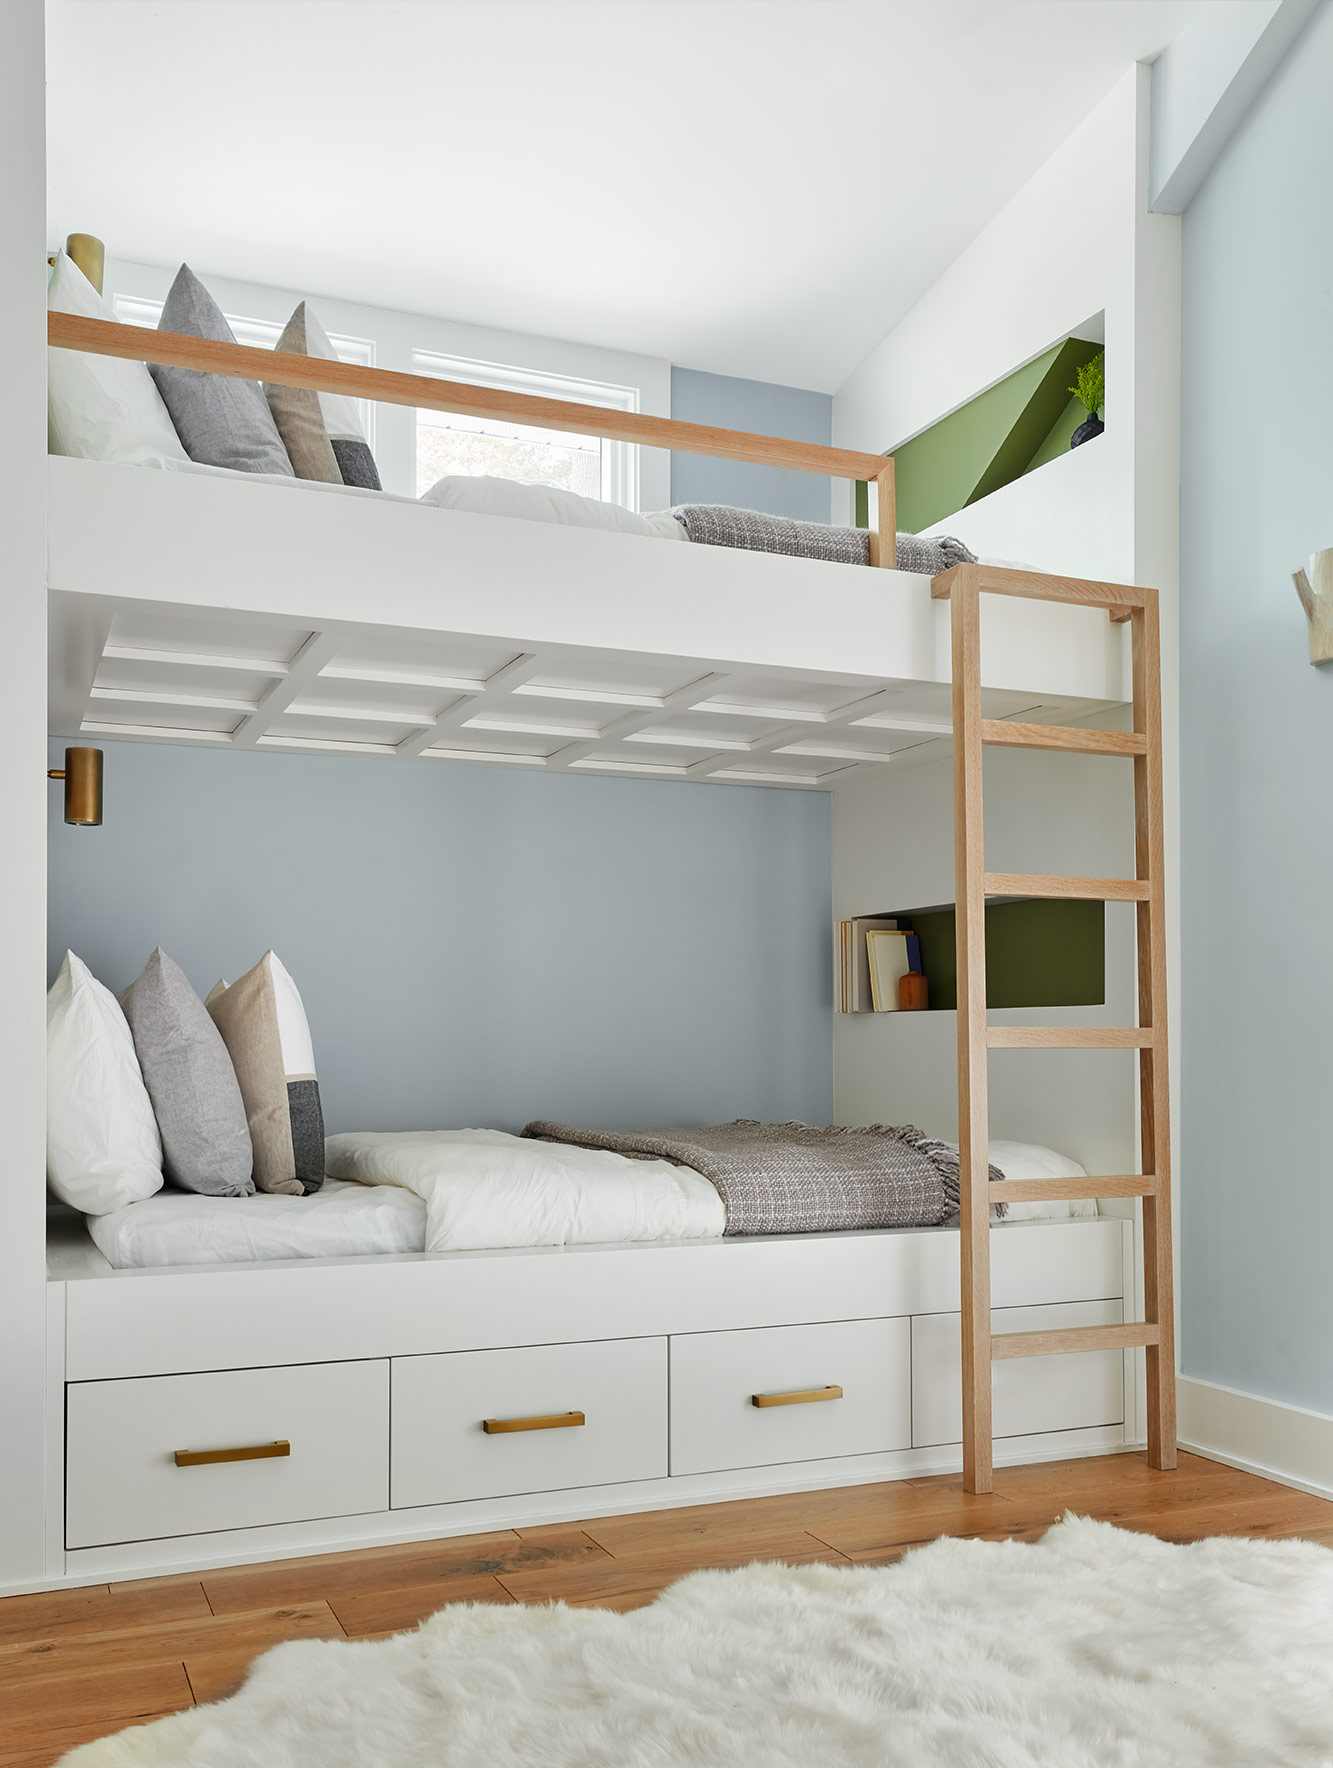 Soft-close drawers beneath the bed provide integrated storage and niches at the head and foot allow the users to keep books or water nearby. We tucked modern brass sconces at the head for reading to really complete the cozy, inviting space.